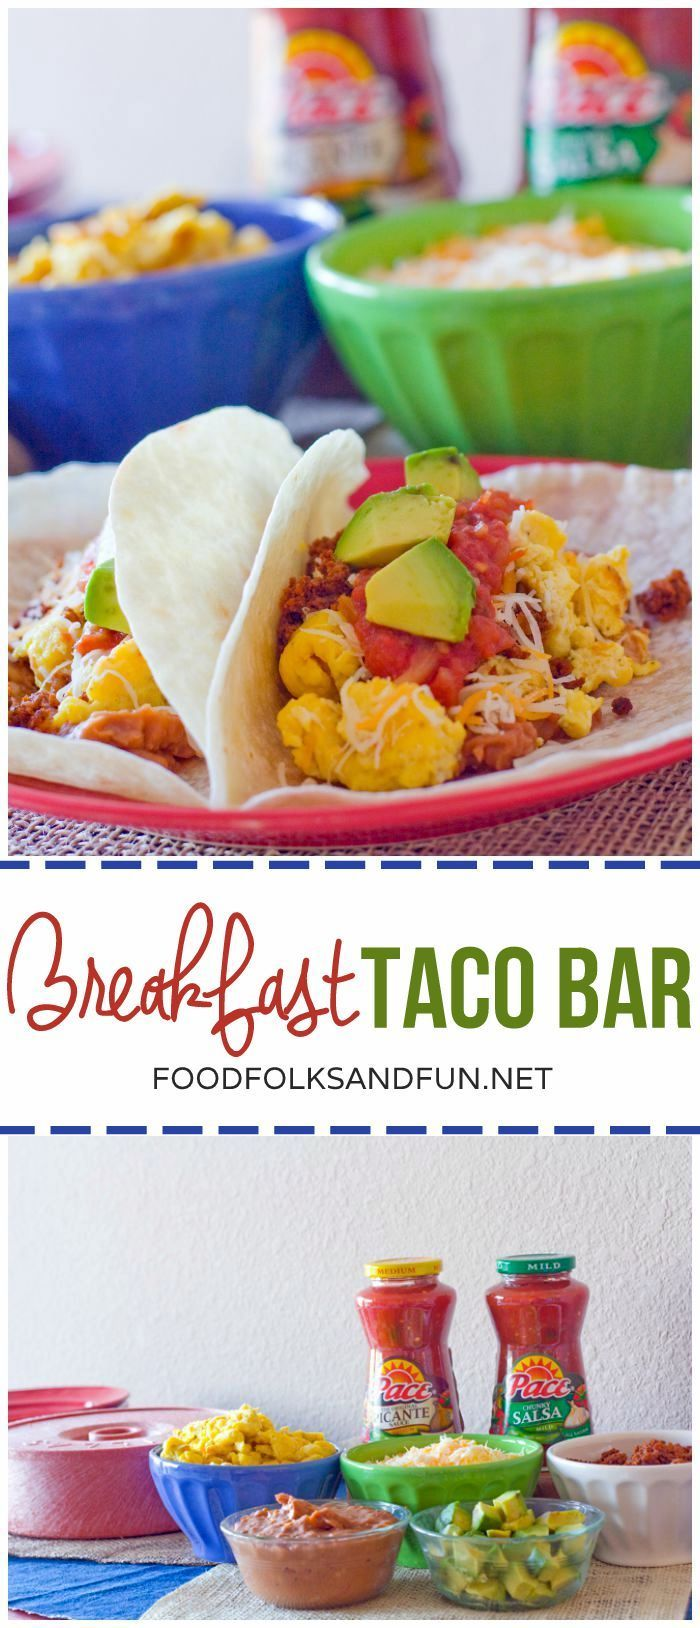 This Breakfast Taco Bar is my secret weapon for out of town guests or hosting early morning college football games!  #StockUpOnPace #Vons [ad]